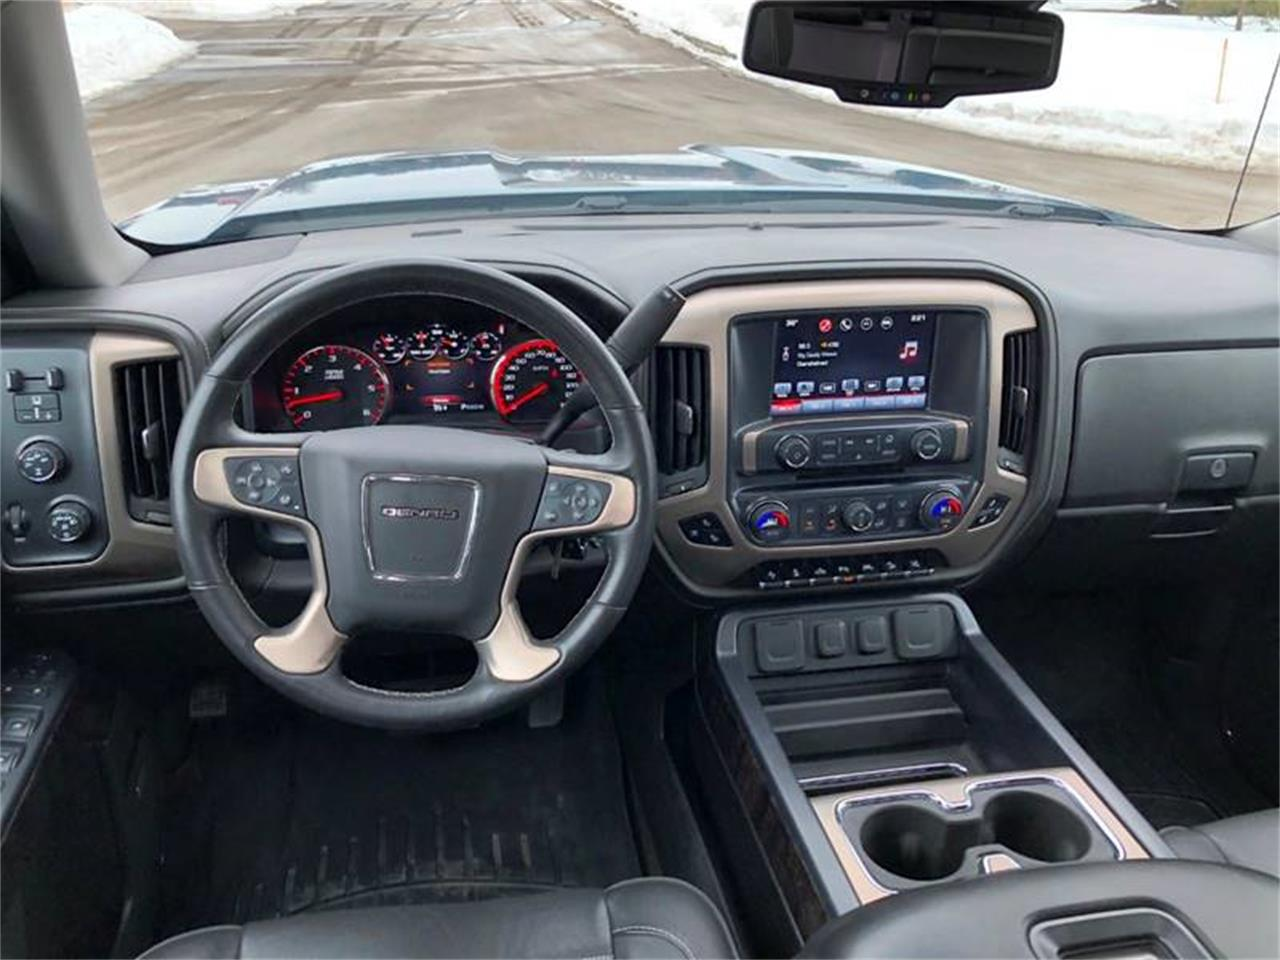 2016 GMC Sierra 1500 (CC-1323255) for sale in Ramsey, Minnesota